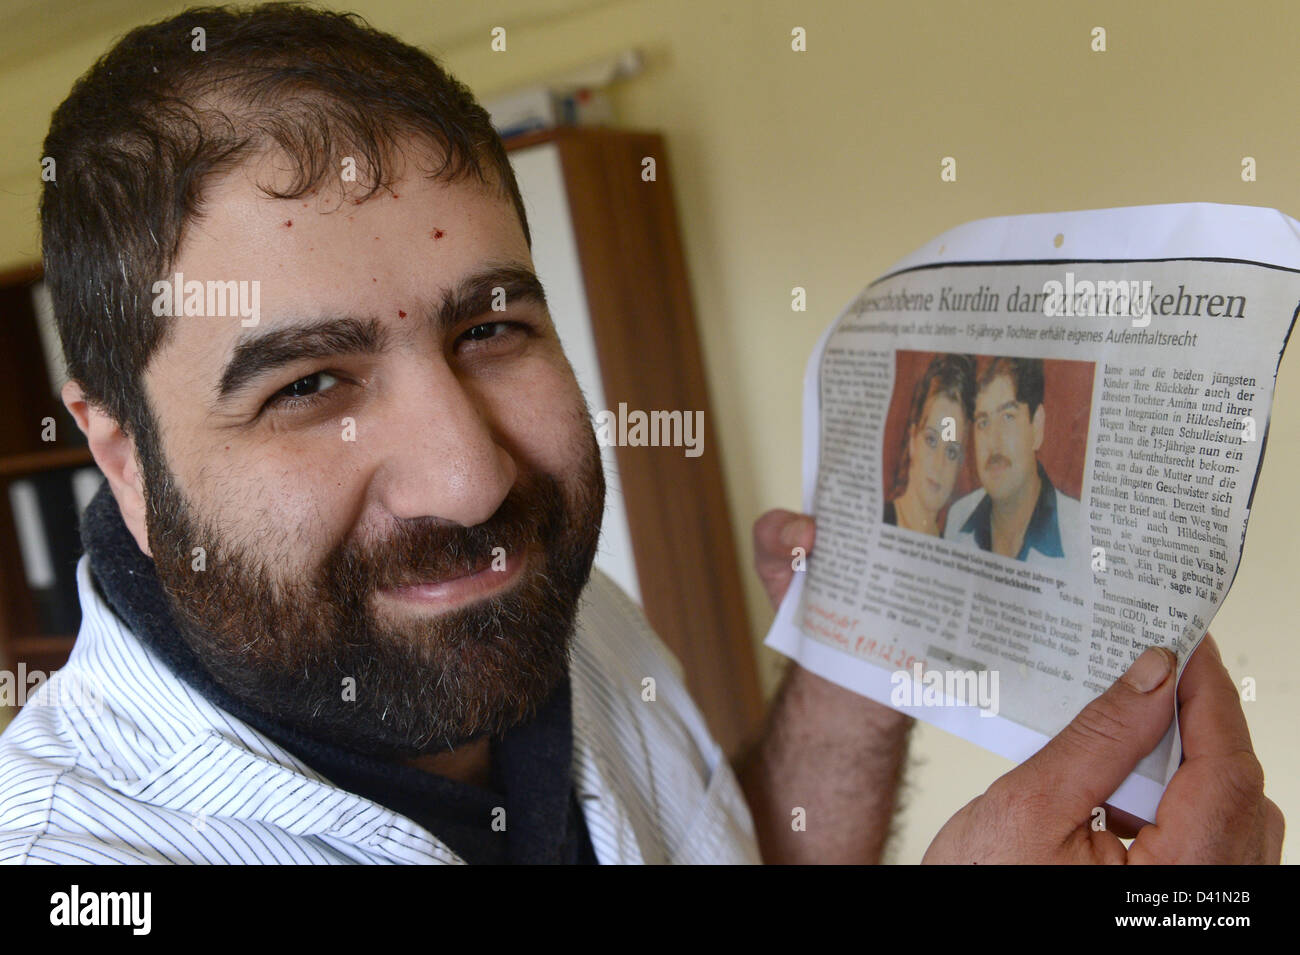 Salzgitter, Germany. 1st March 2013. Ahmed Siala views a newspaper article with the picture of his wife Gazale Salame - Stock Image